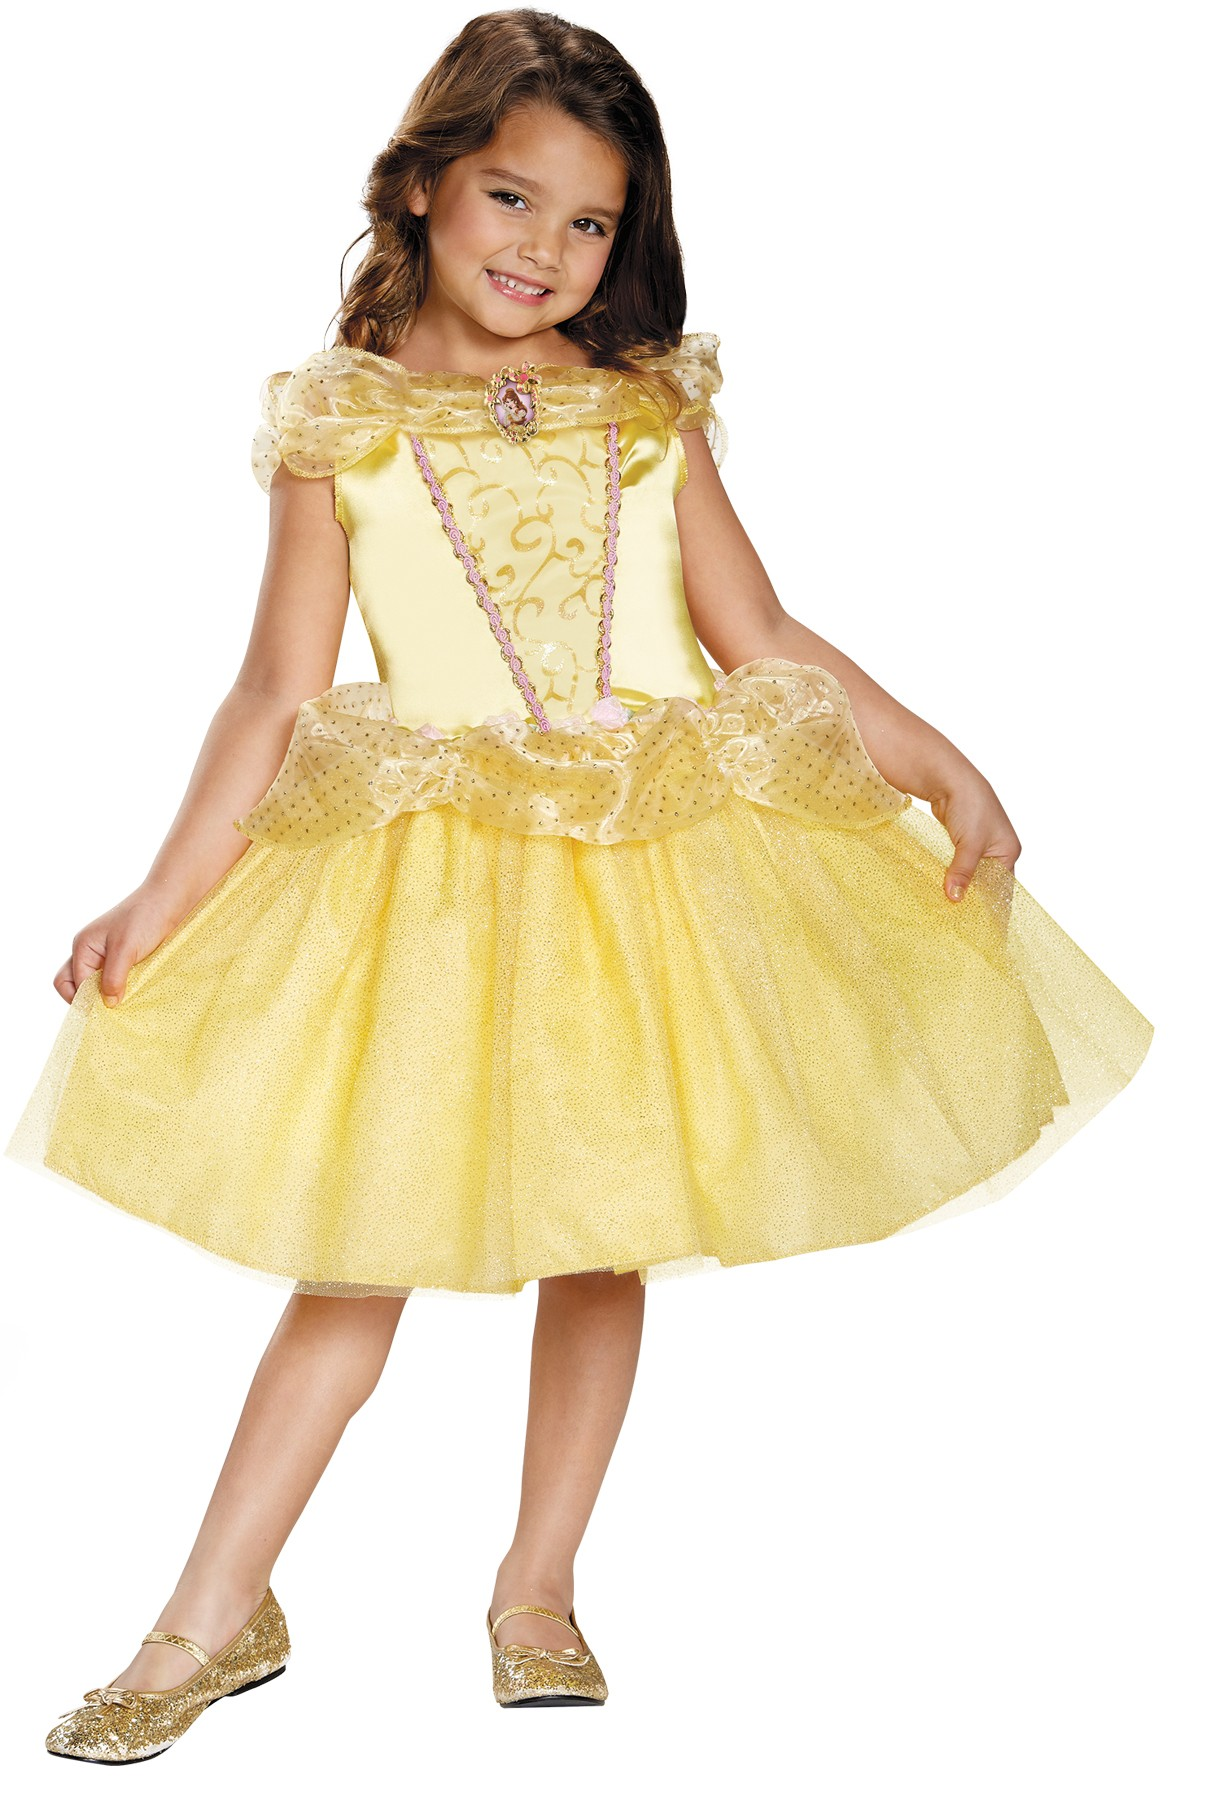 0fea1a2e8 Disney Beauty and the Beast Belle Classic Toddler   Child Costume ...